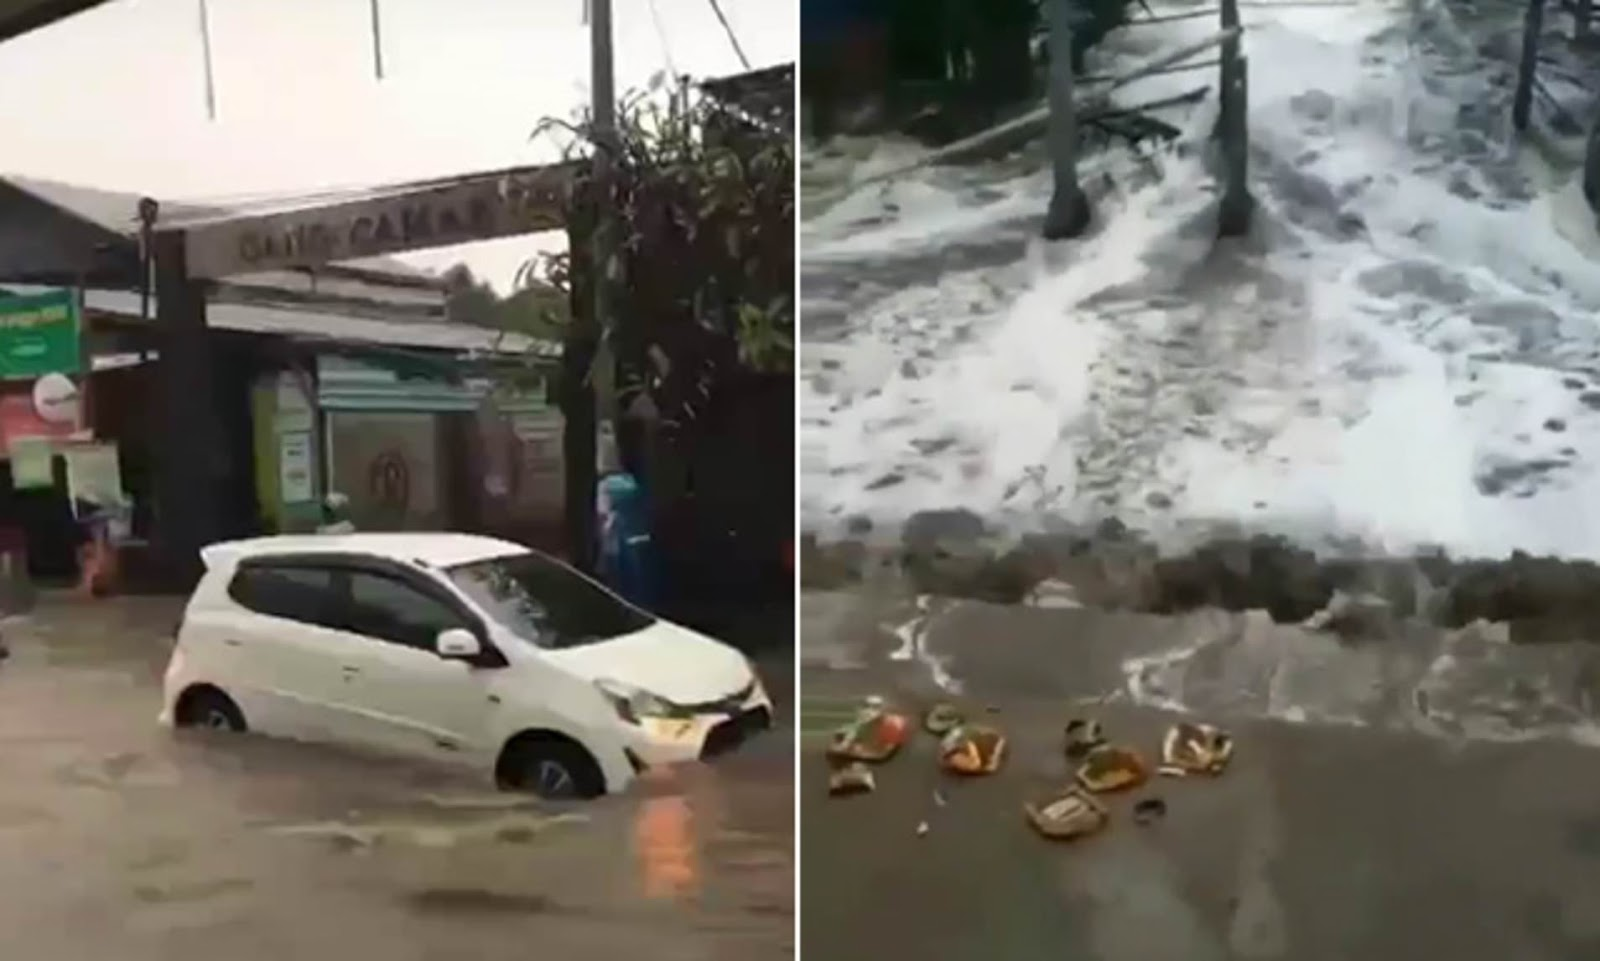 Floodwaters swamp Bali as mini tsunami hits the famous tourist hot spot |  Daily Mail Online